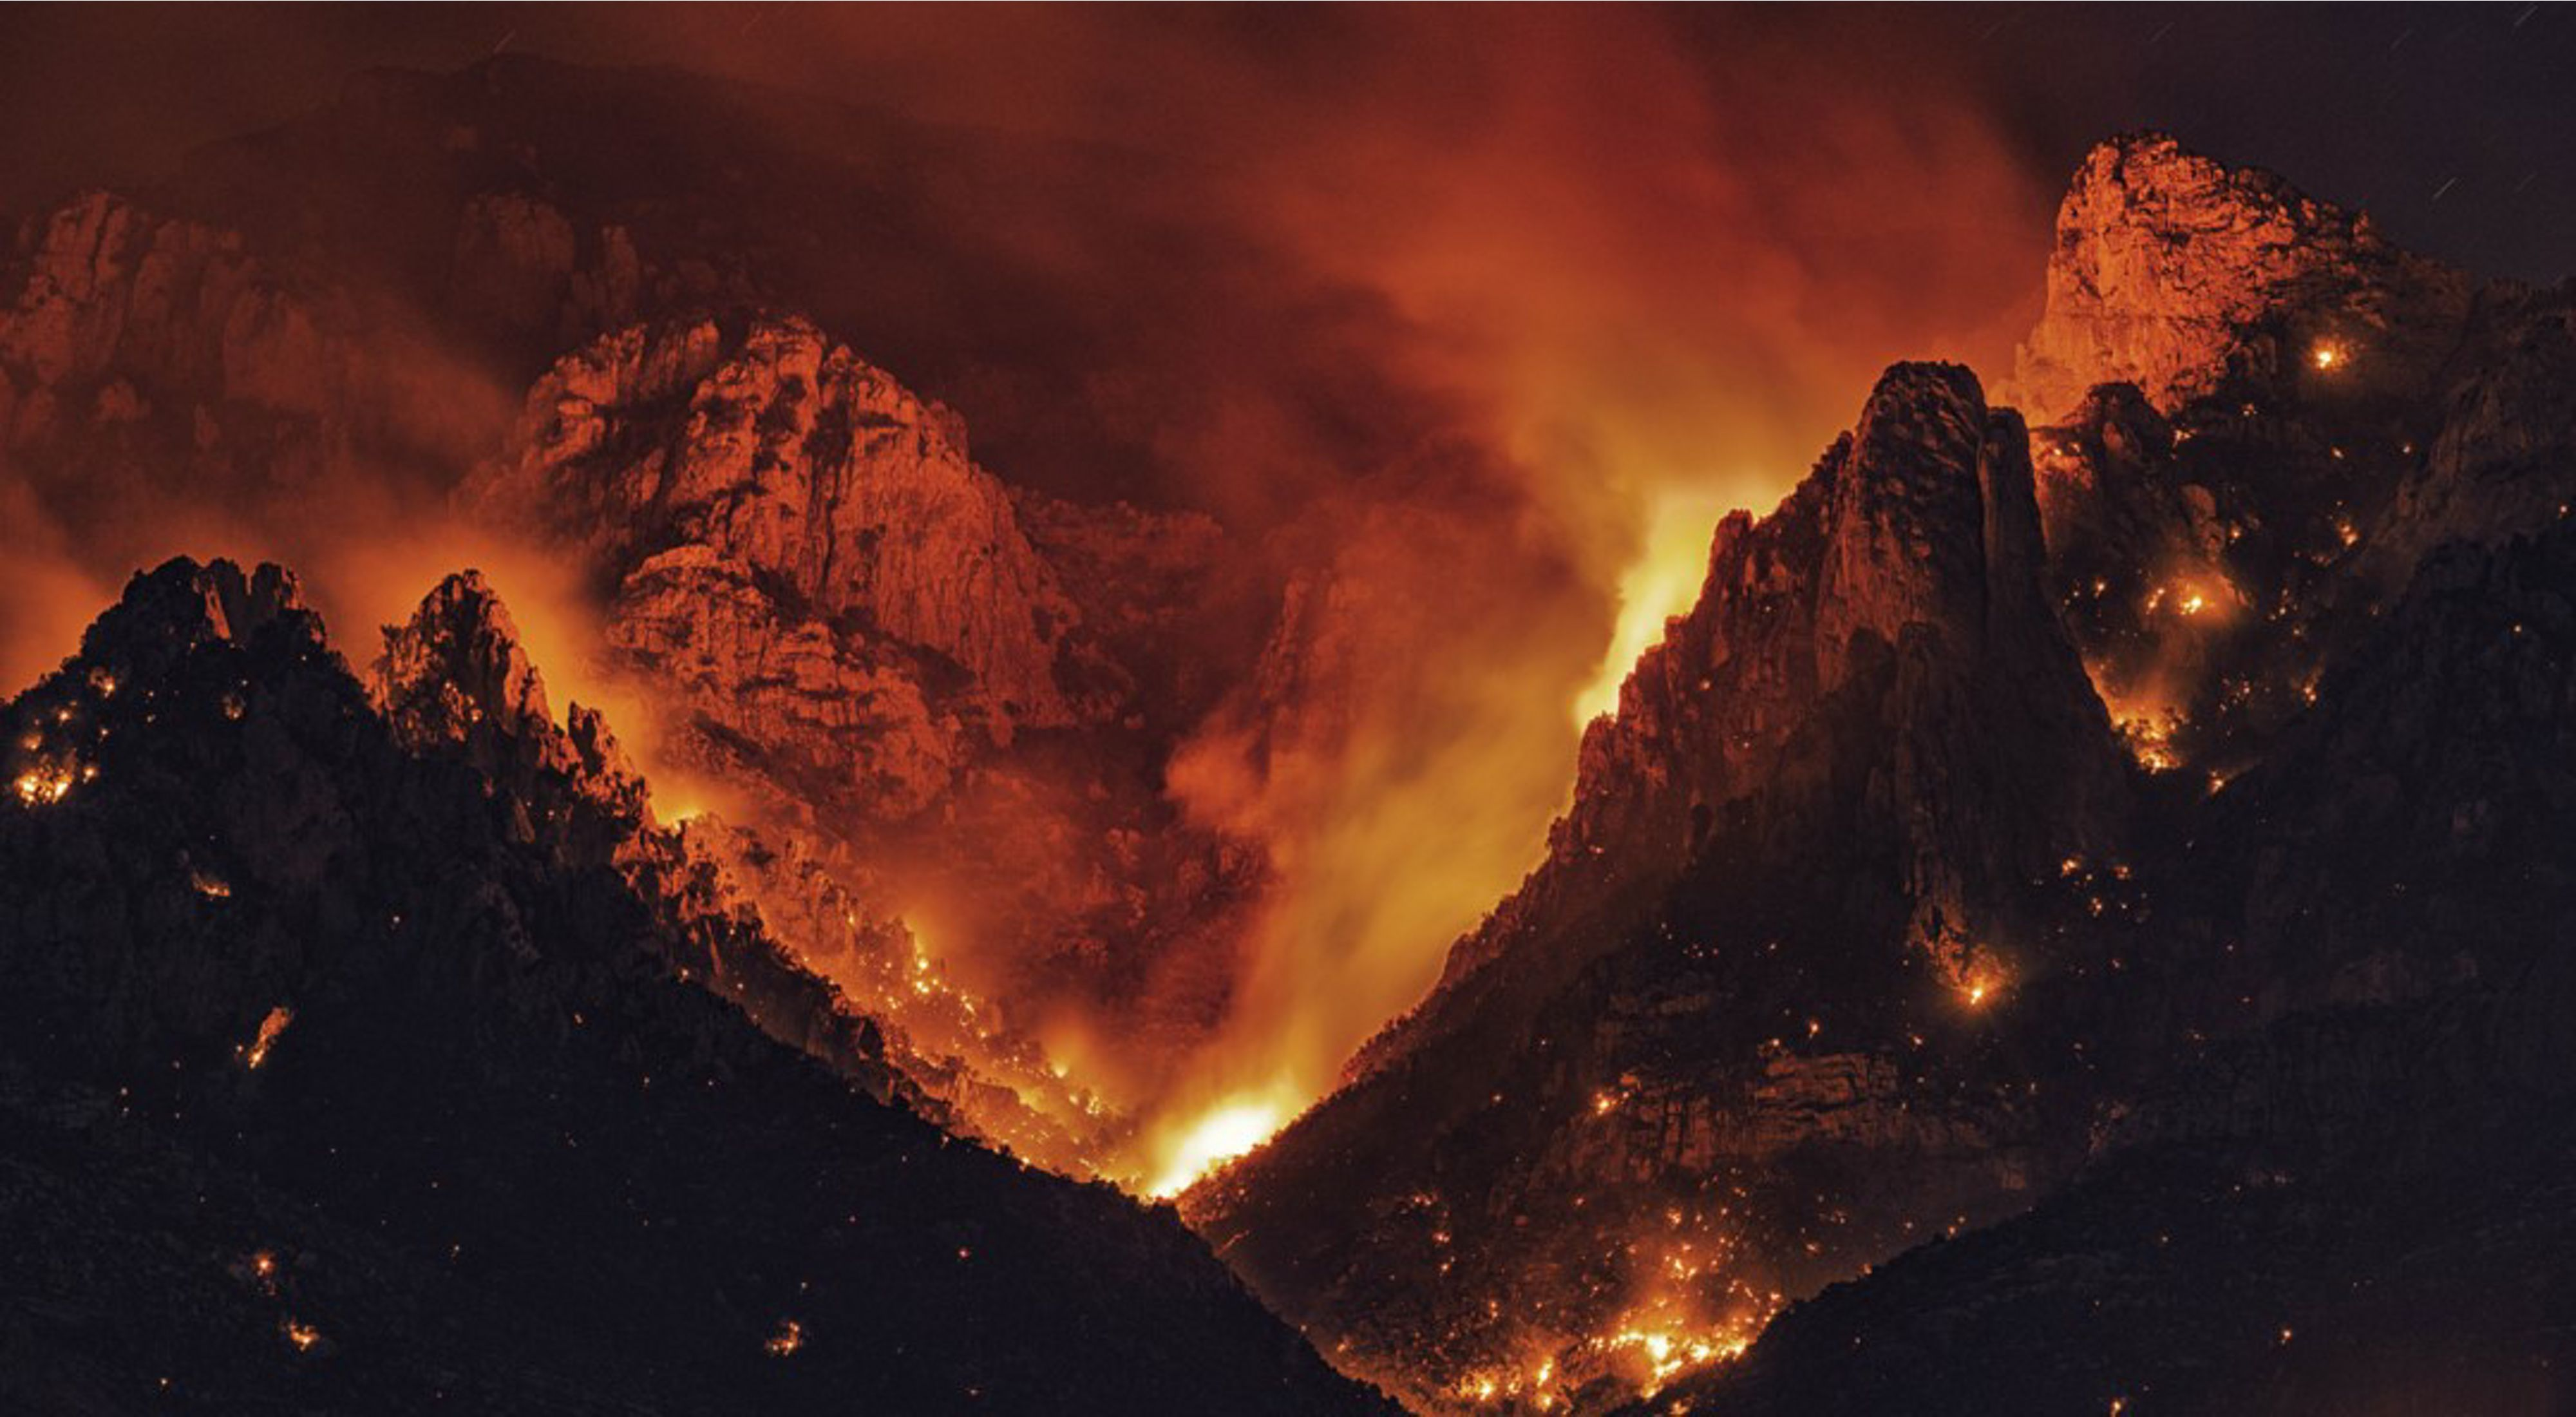 Bright orange fire glows out from between mountains at night.